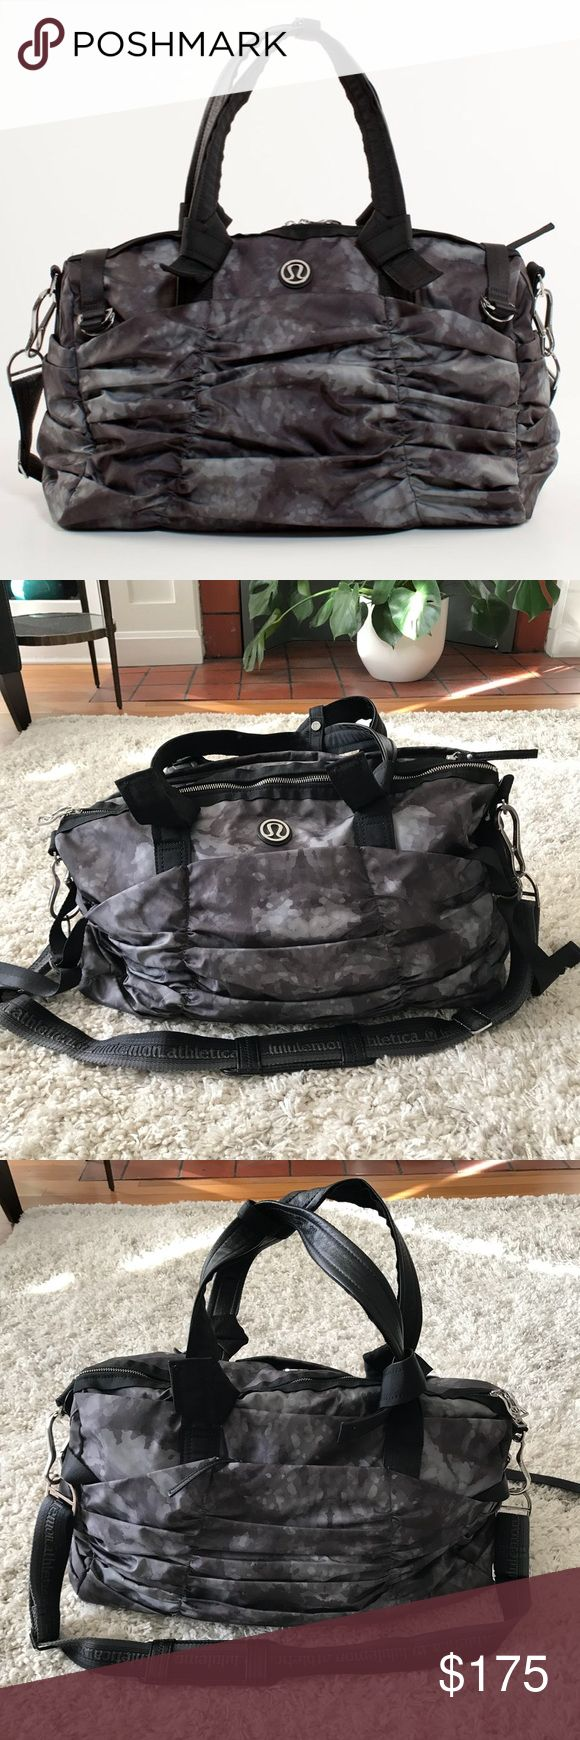 """🍋 Lululemon Destined for Greatness Duffel Rare Lululemon Destined for Greatness Duffel in Deep Coal Creekside Camo.  · Water-resistant Glyde – 100% polyester · Interior pockets, exterior zip pockets, laptop/tablet sleeve · Nylon mat straps · Adjustable shoulder strap · 14"""" high x 20"""" long x 7.25"""" wide  Does not include shoe pouch or laundry bag. Lightly used only as a carry on – no stains, holes or scratches – excellent, pre-owned condition. Bundle & save 💰! Sorry - 🚫 trades! lululemon…"""